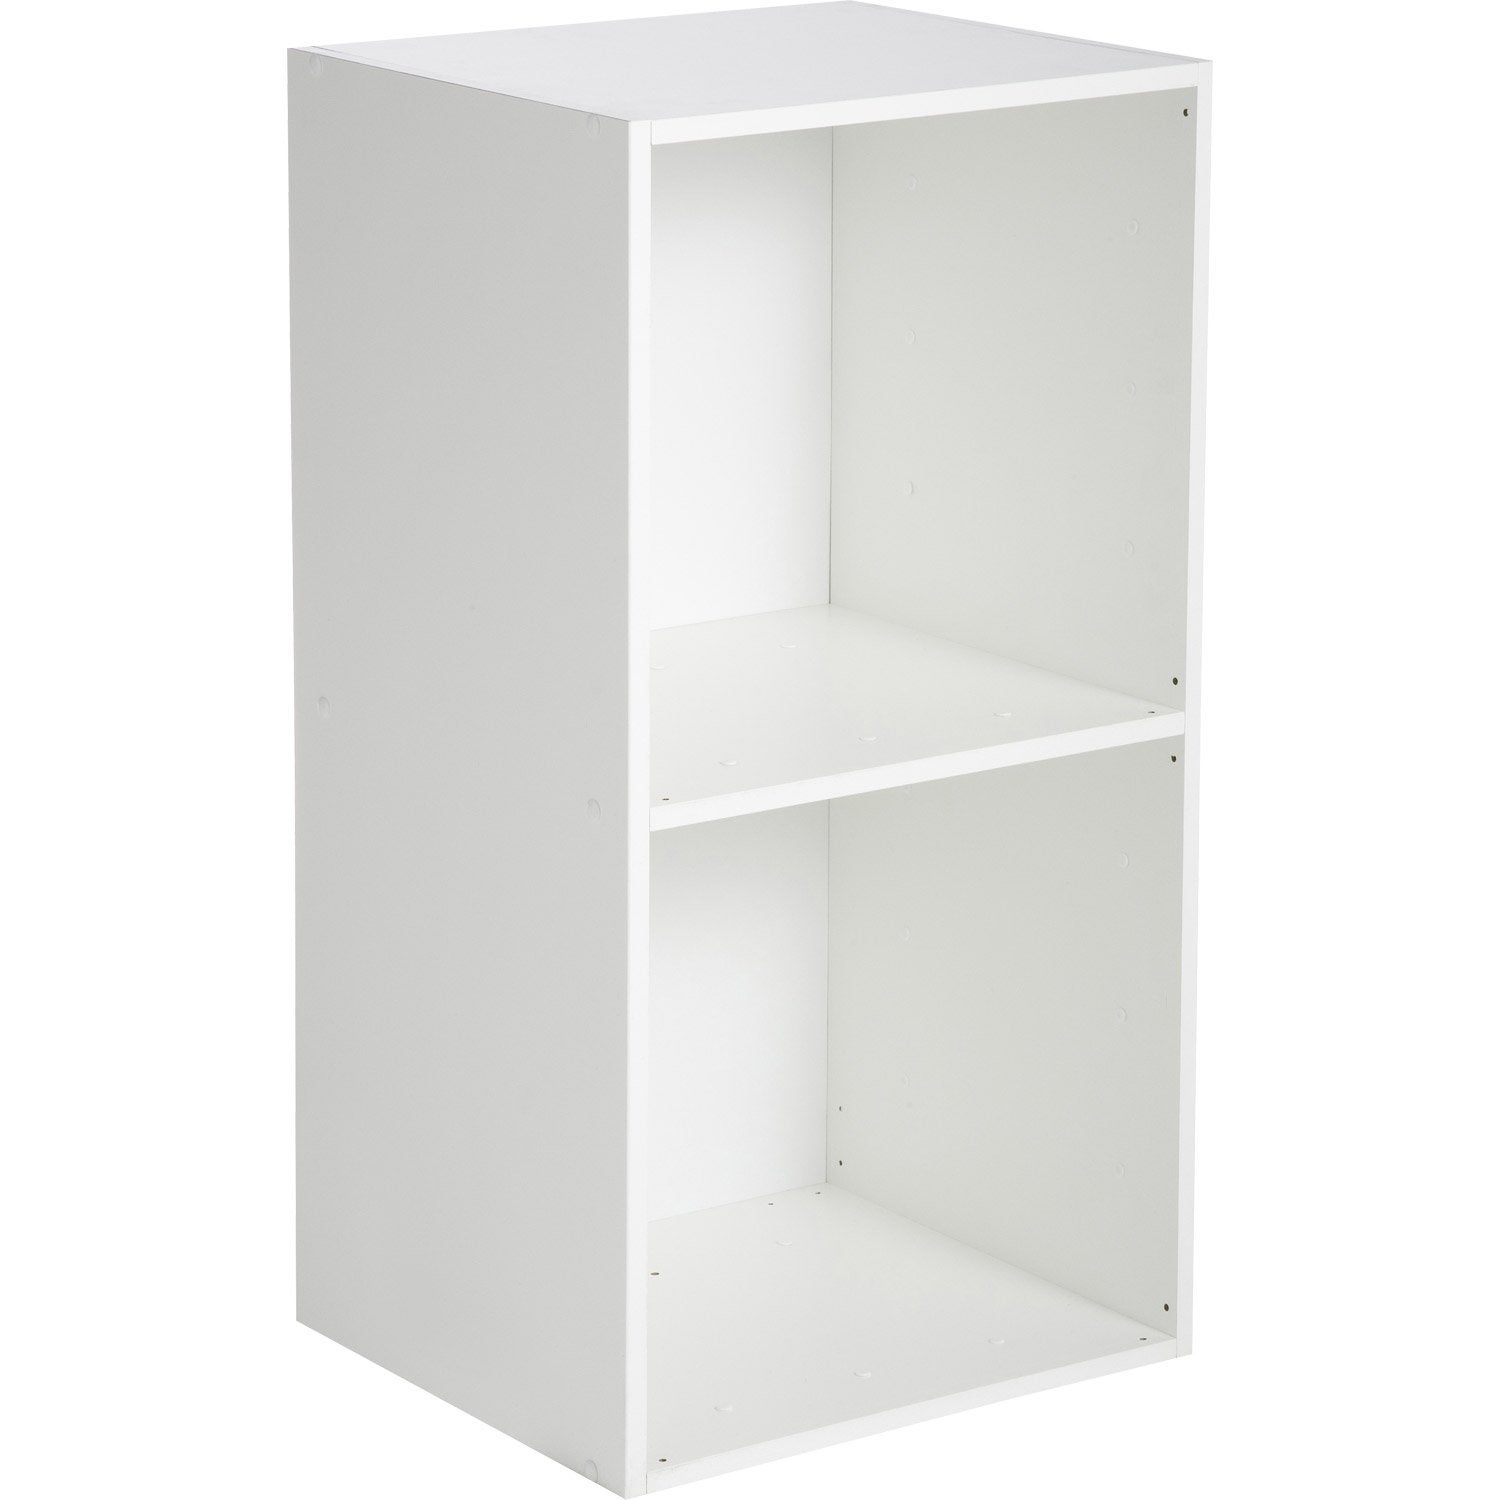 Etag re 2 cases multikaz blanc x x cm leroy merlin - Etagere et casier a chaussures ...